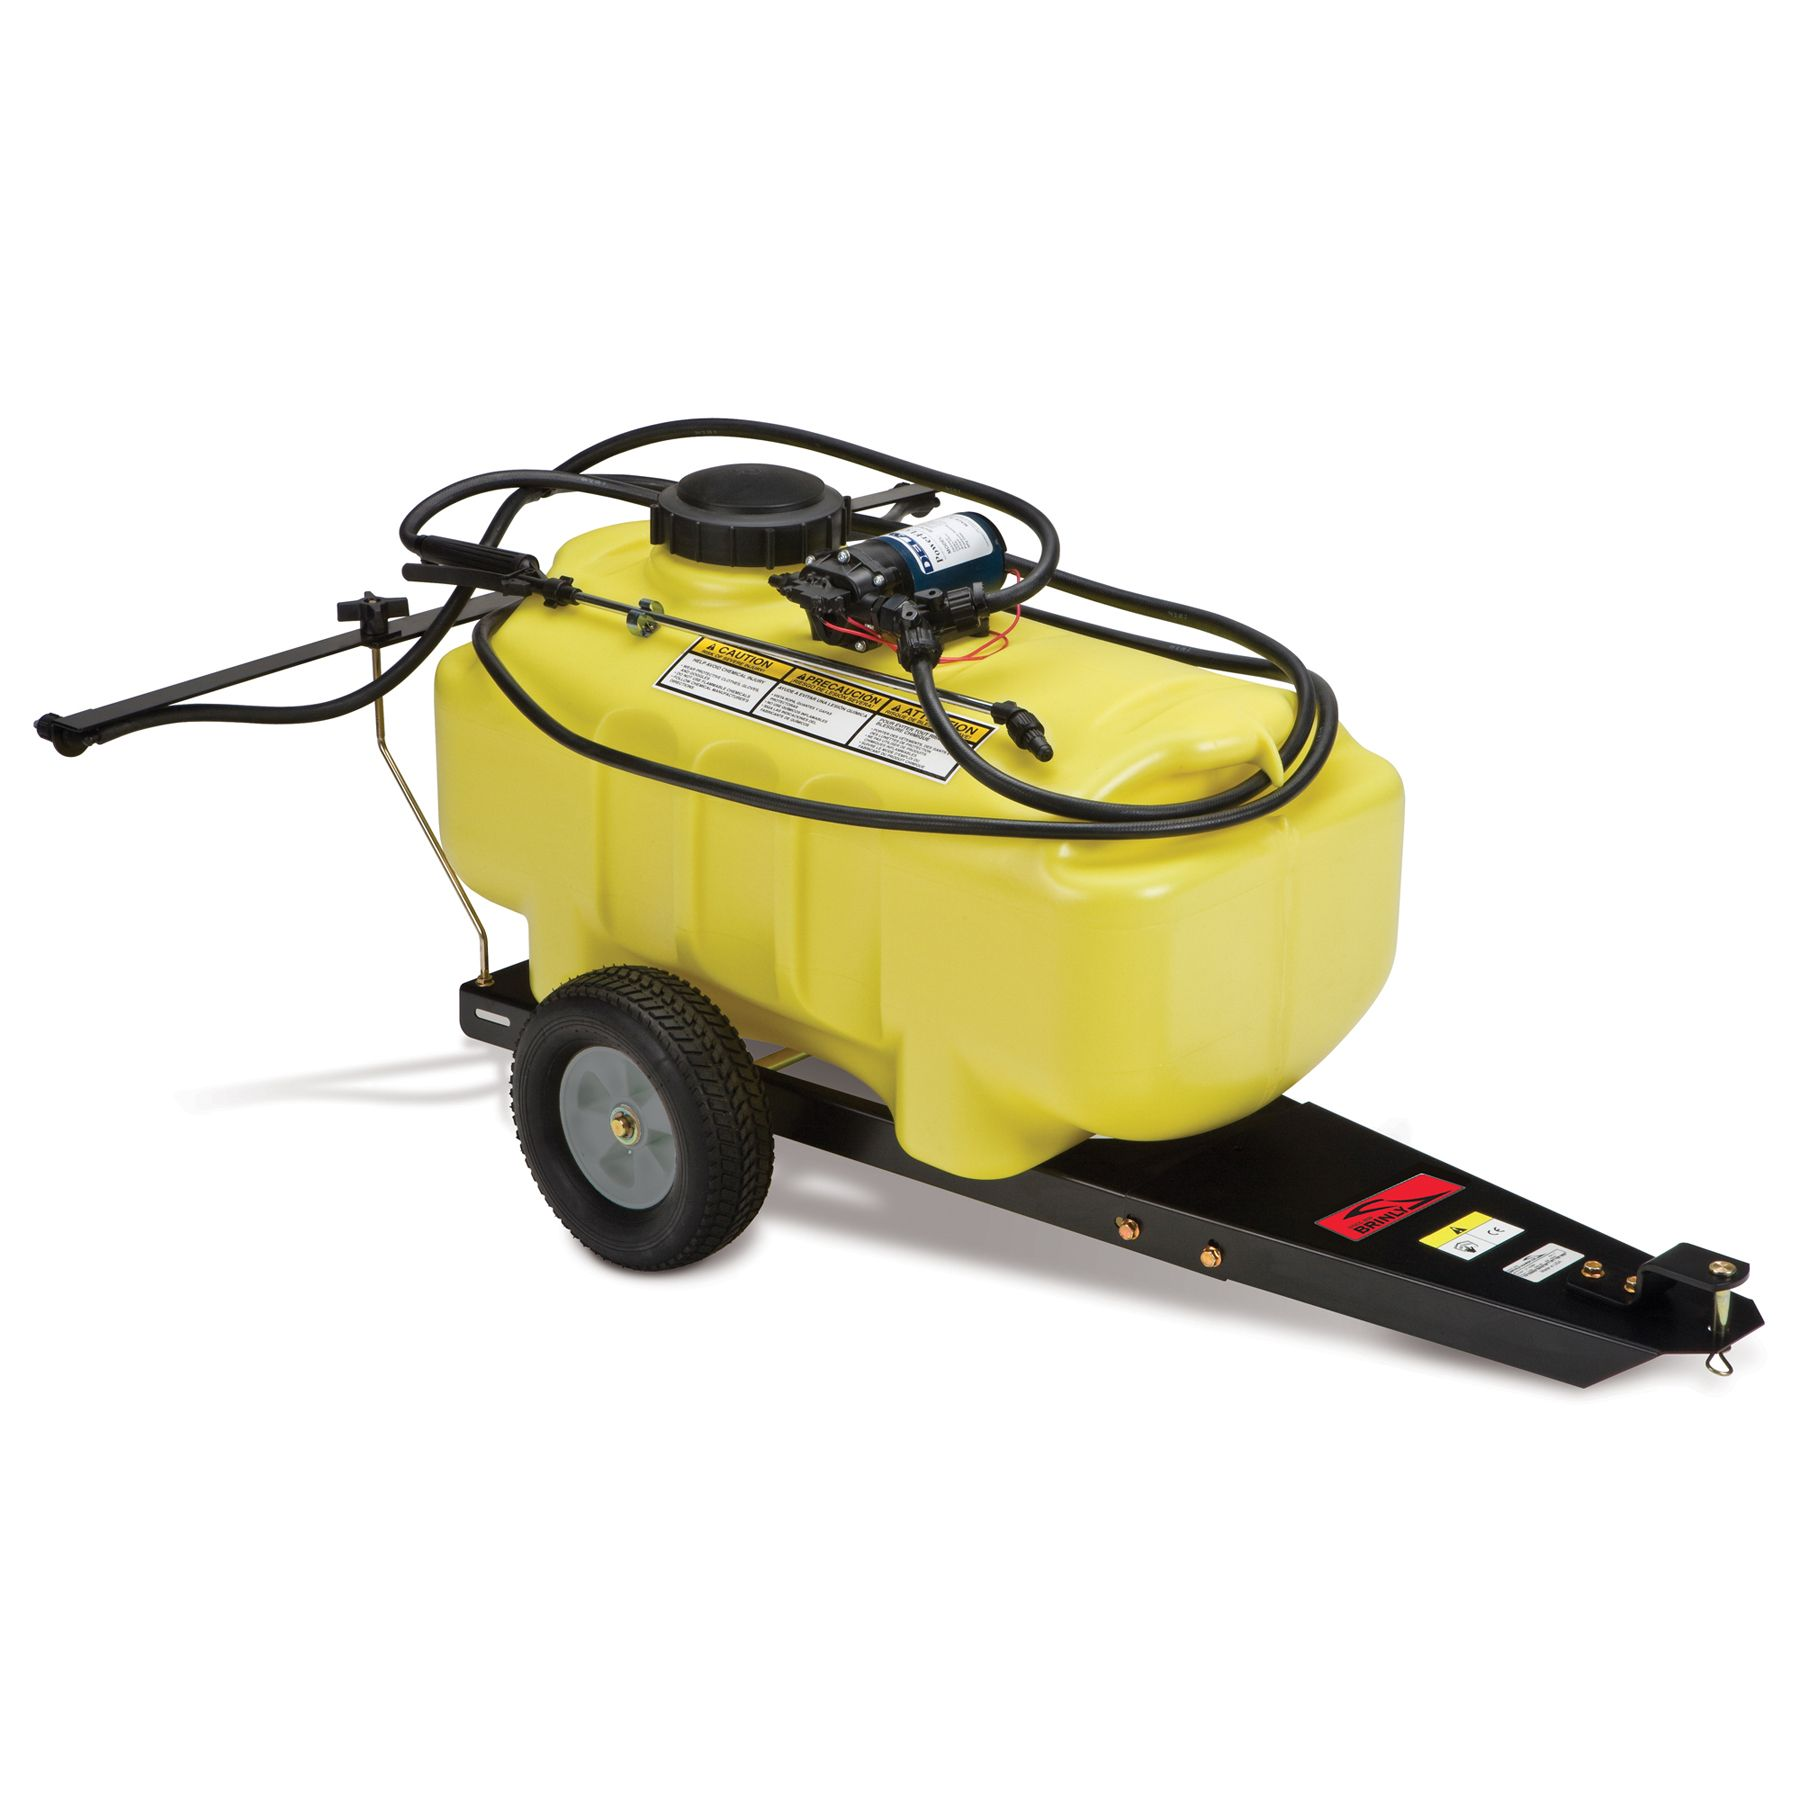 25-Gallon Tow Sprayer